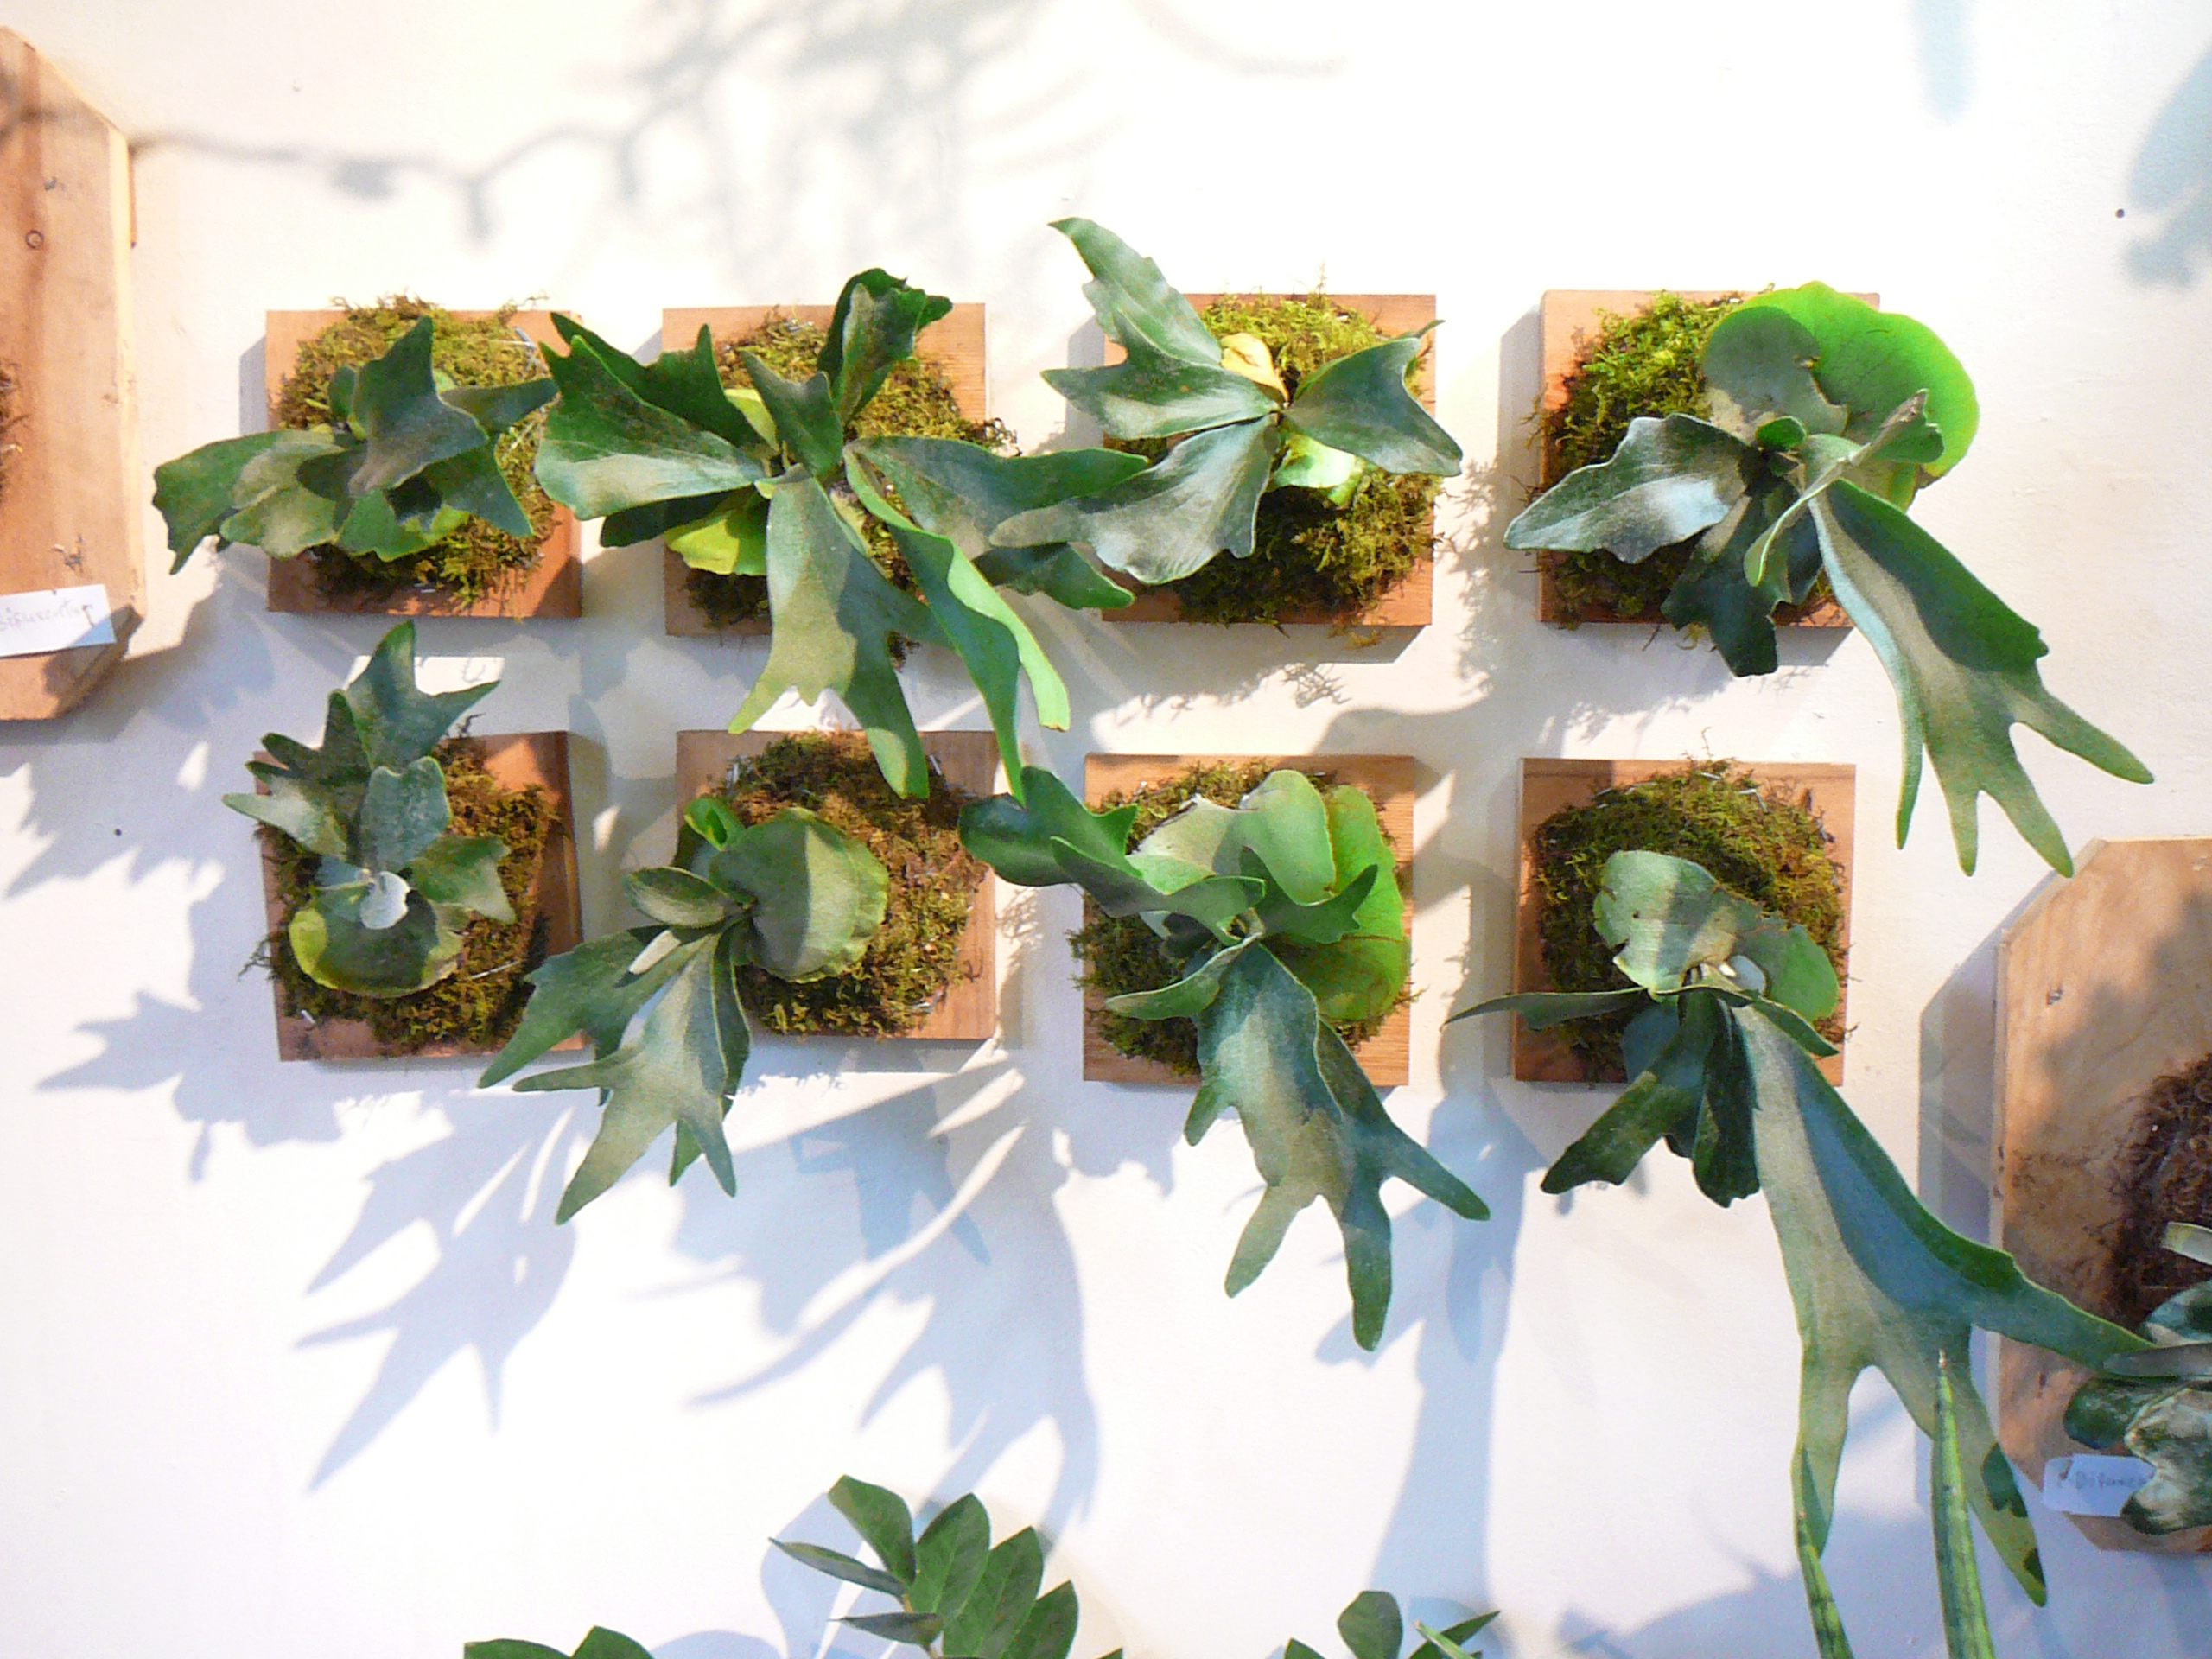 Staghorn fern on the wall